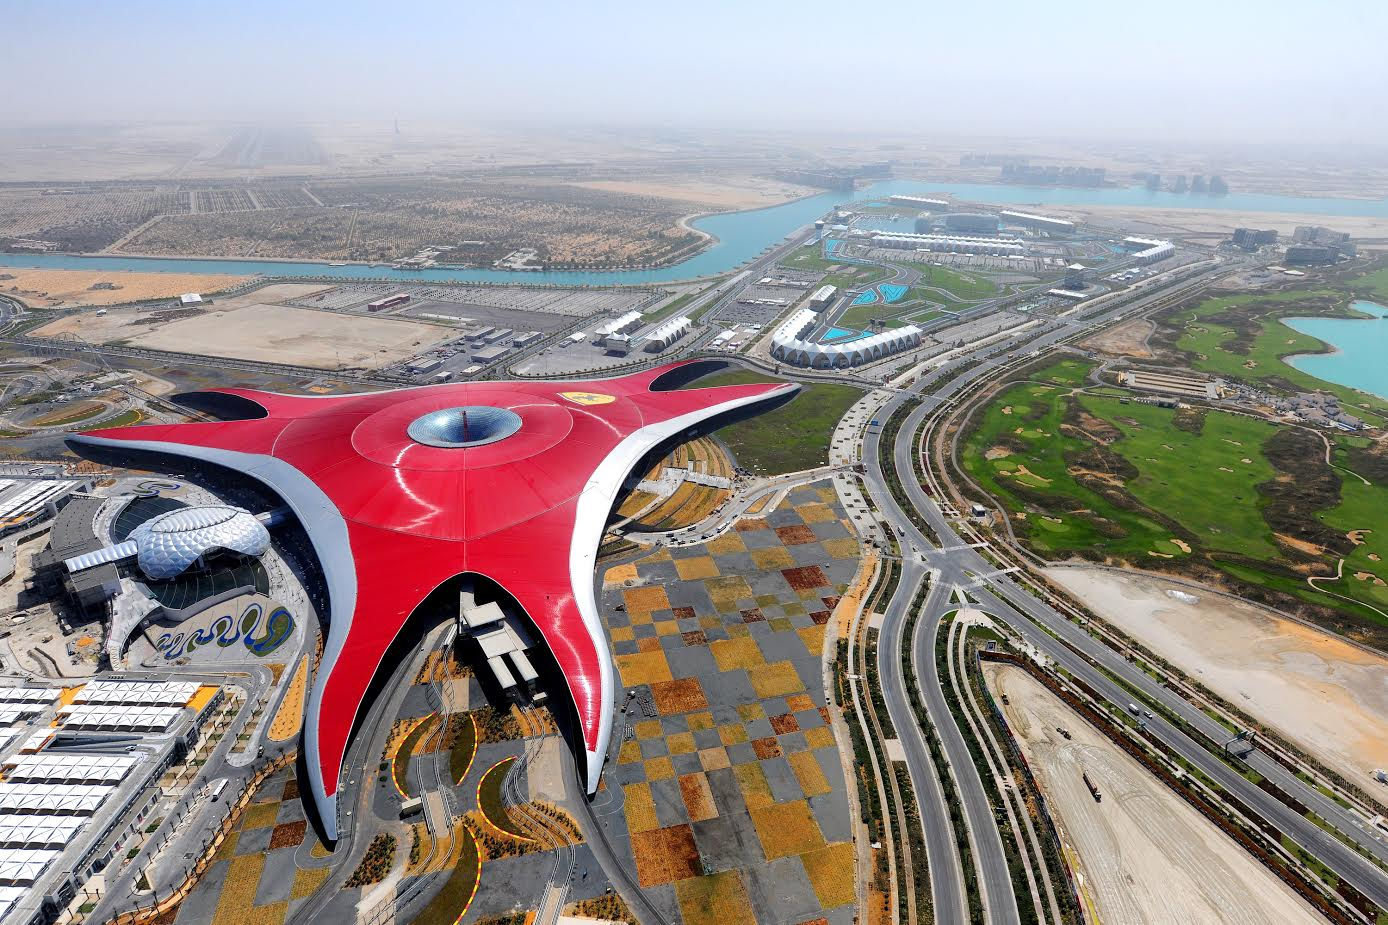 Yas Island - a comprehensive guide to Abu Dhabi